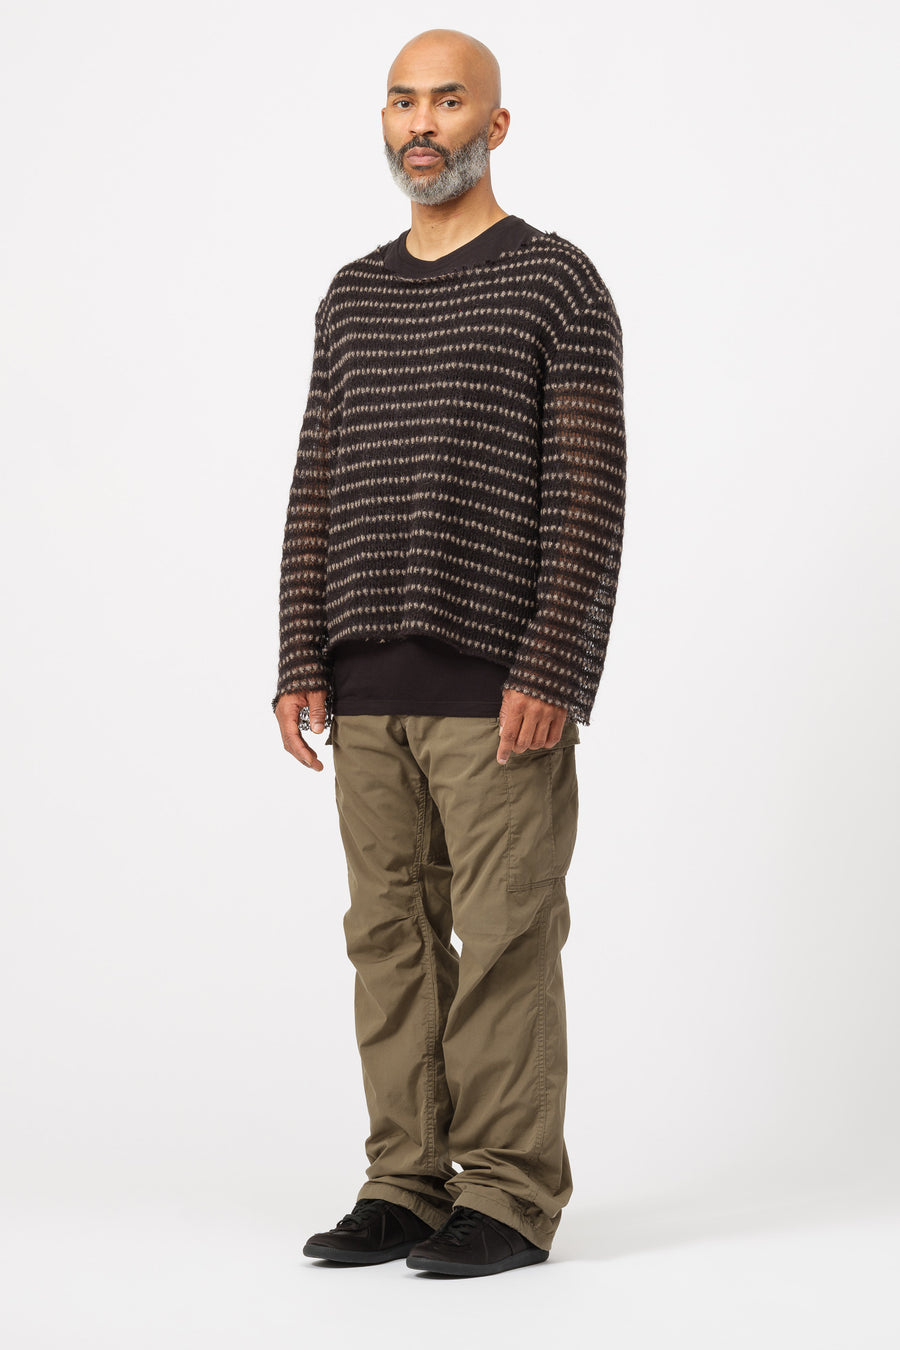 GutterTM Sweater in Black/Beige - Notre